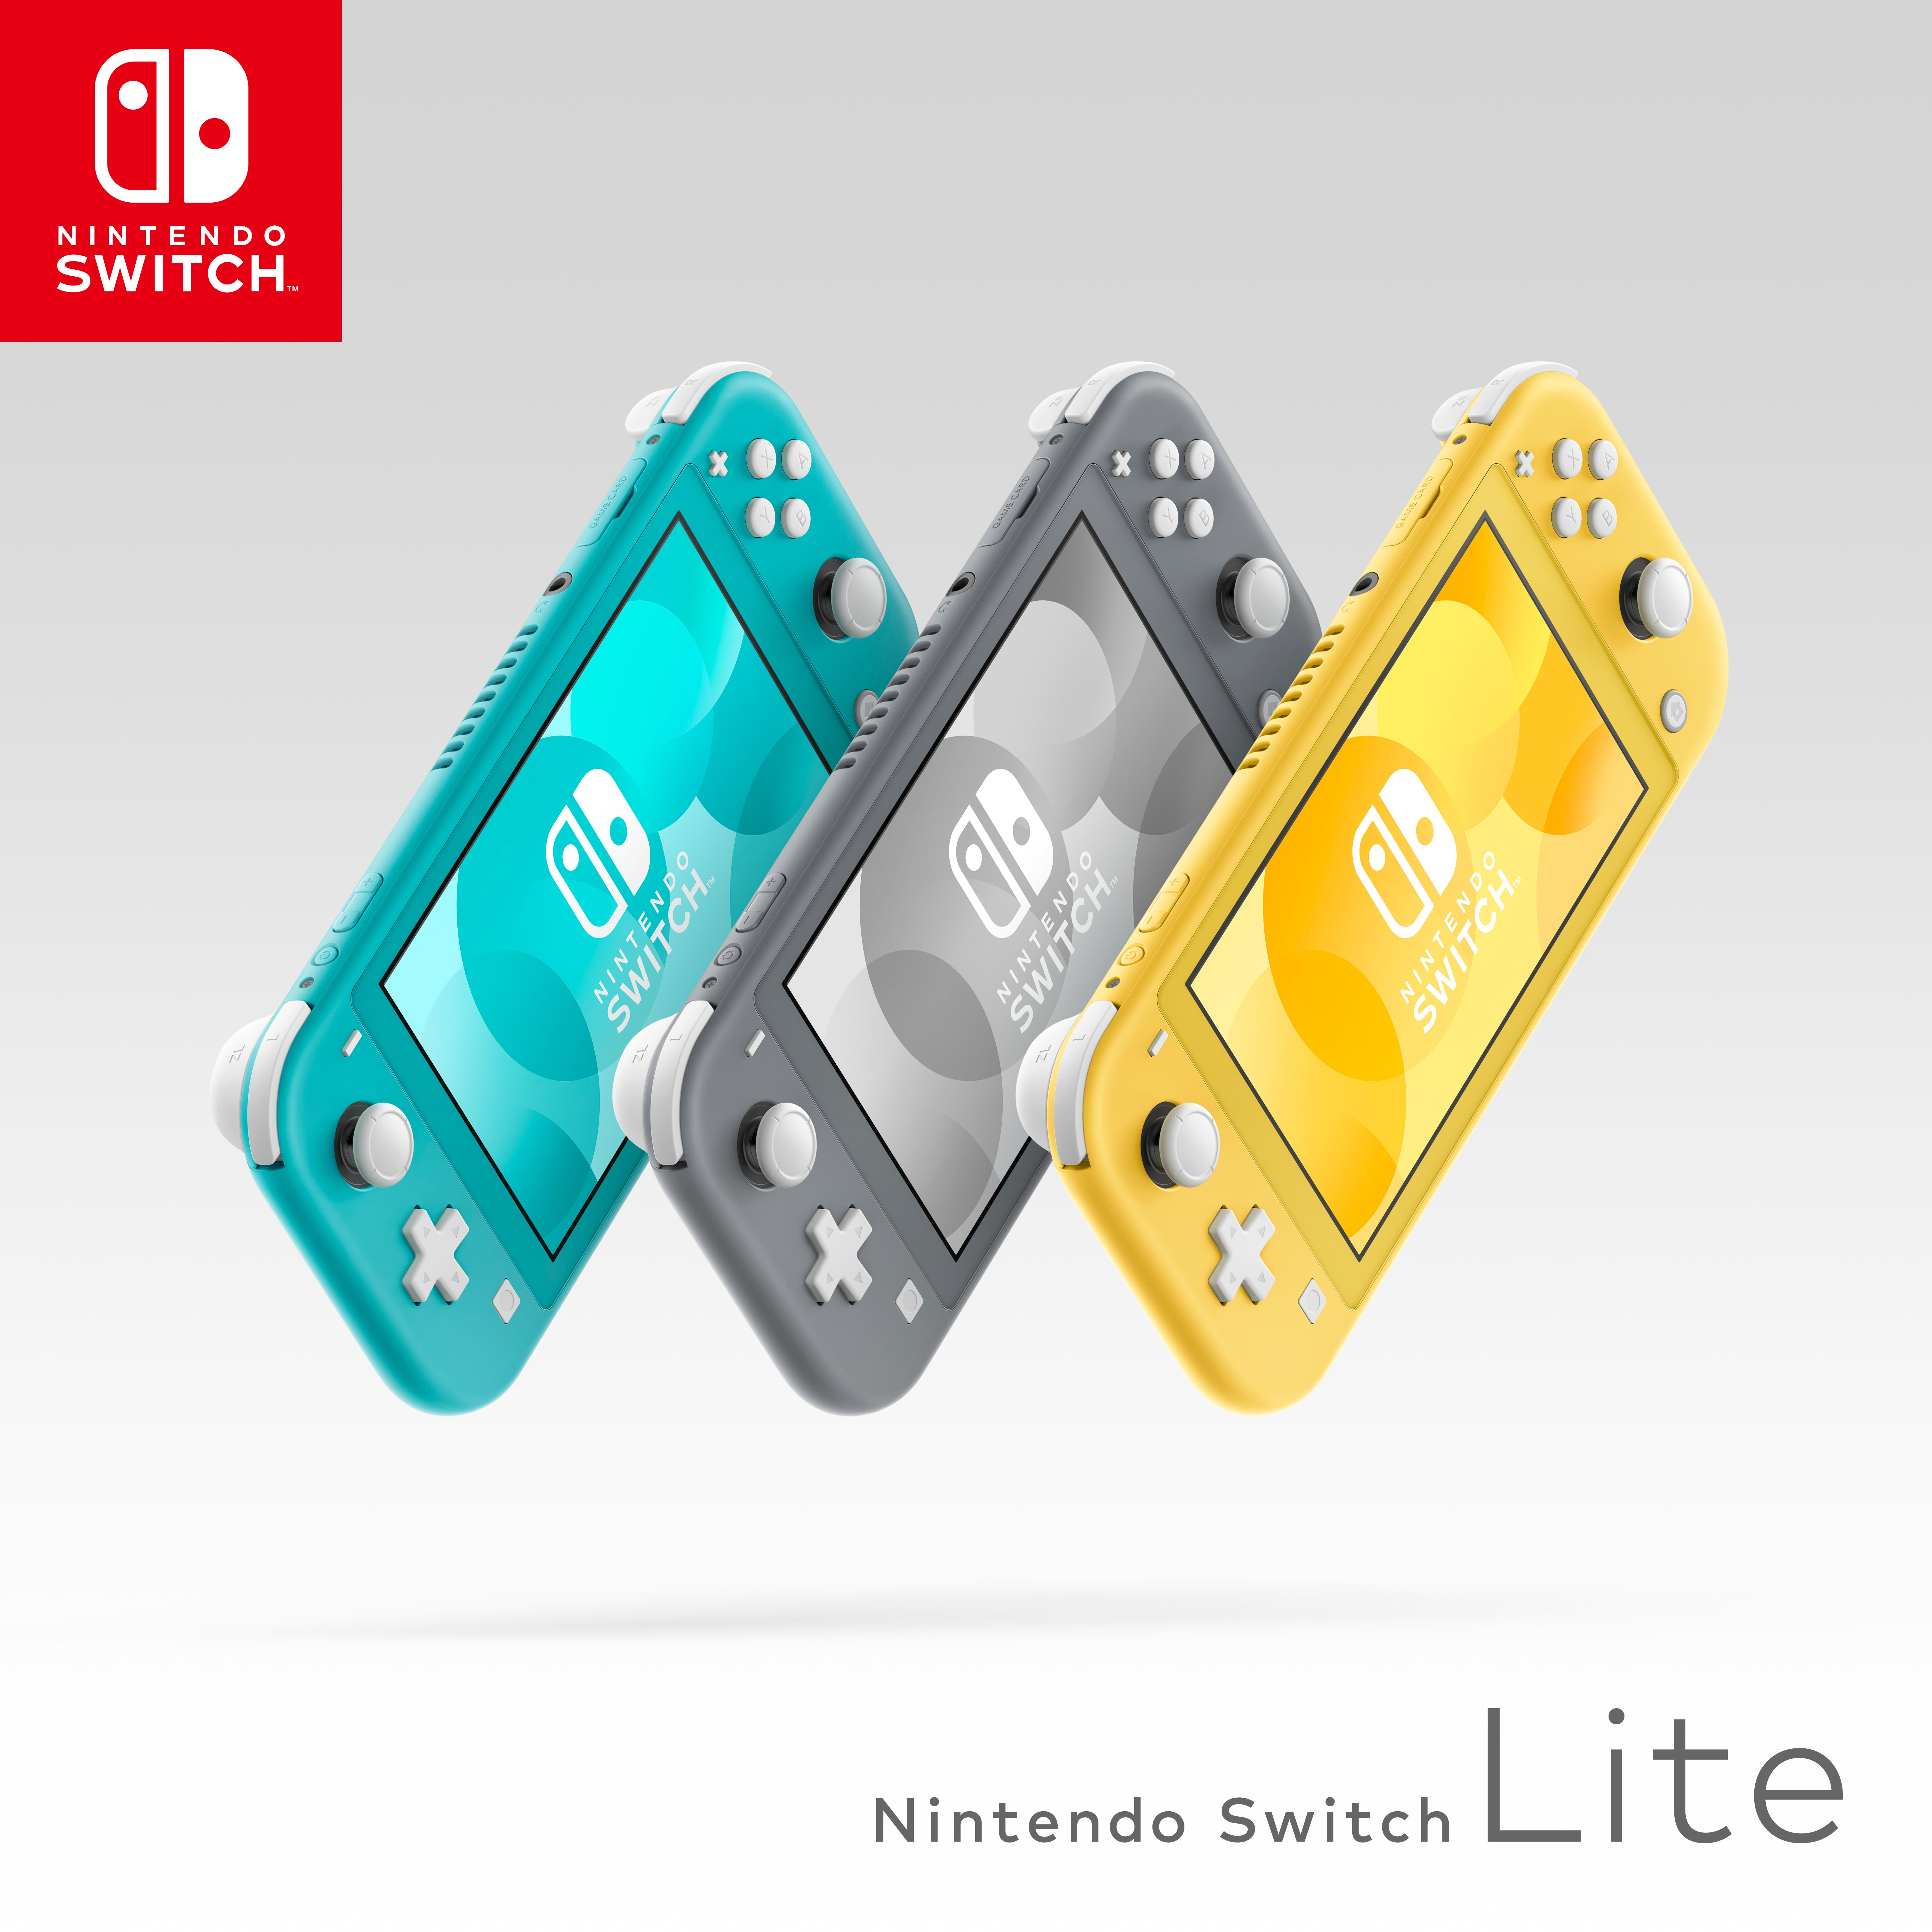 Nintendo Switch Lite 1 out of 3 image gallery